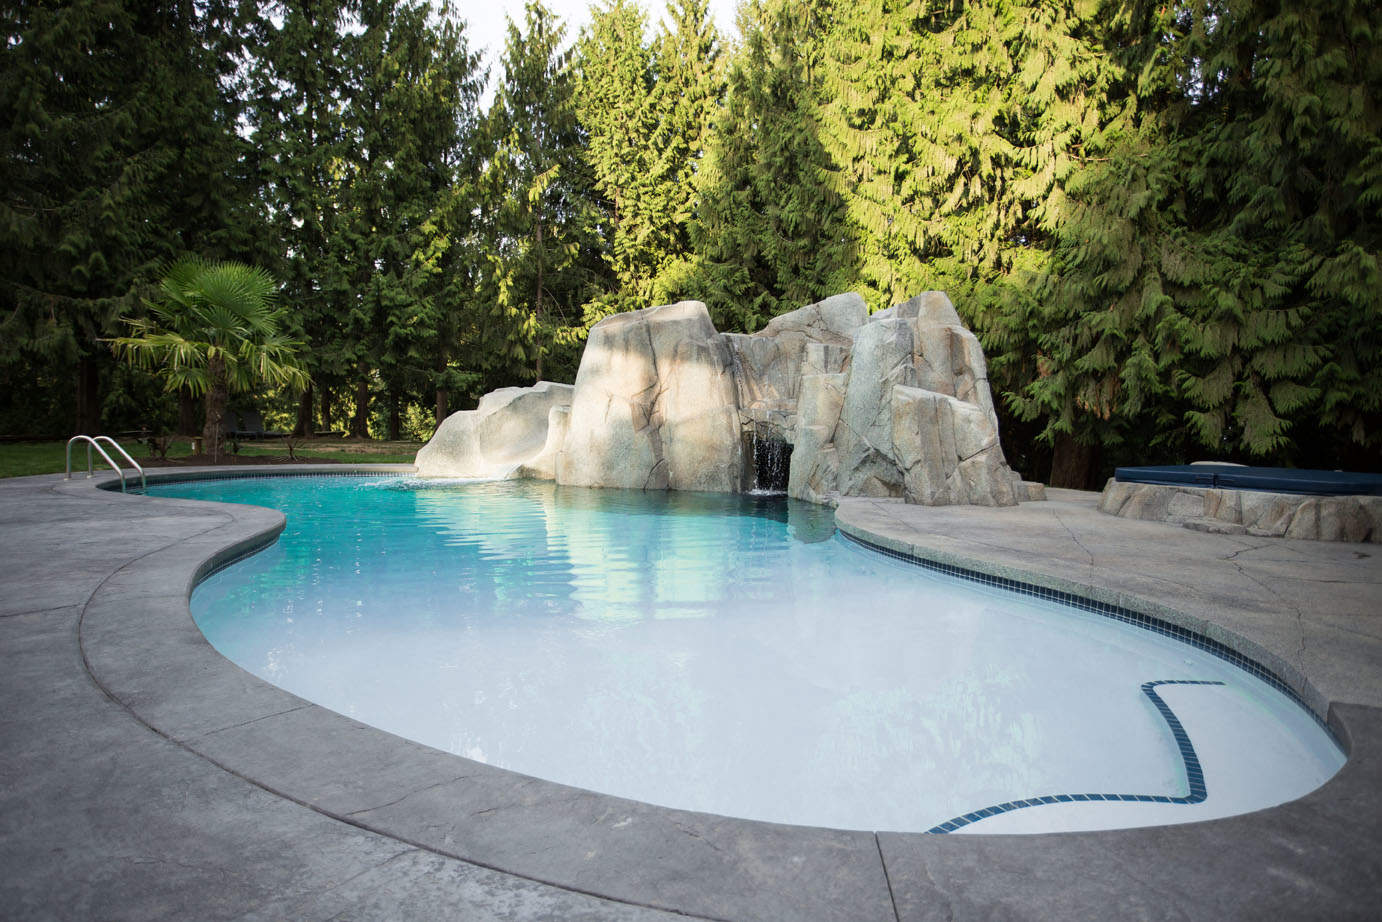 Custom designed swimming pool with high quality concrete work